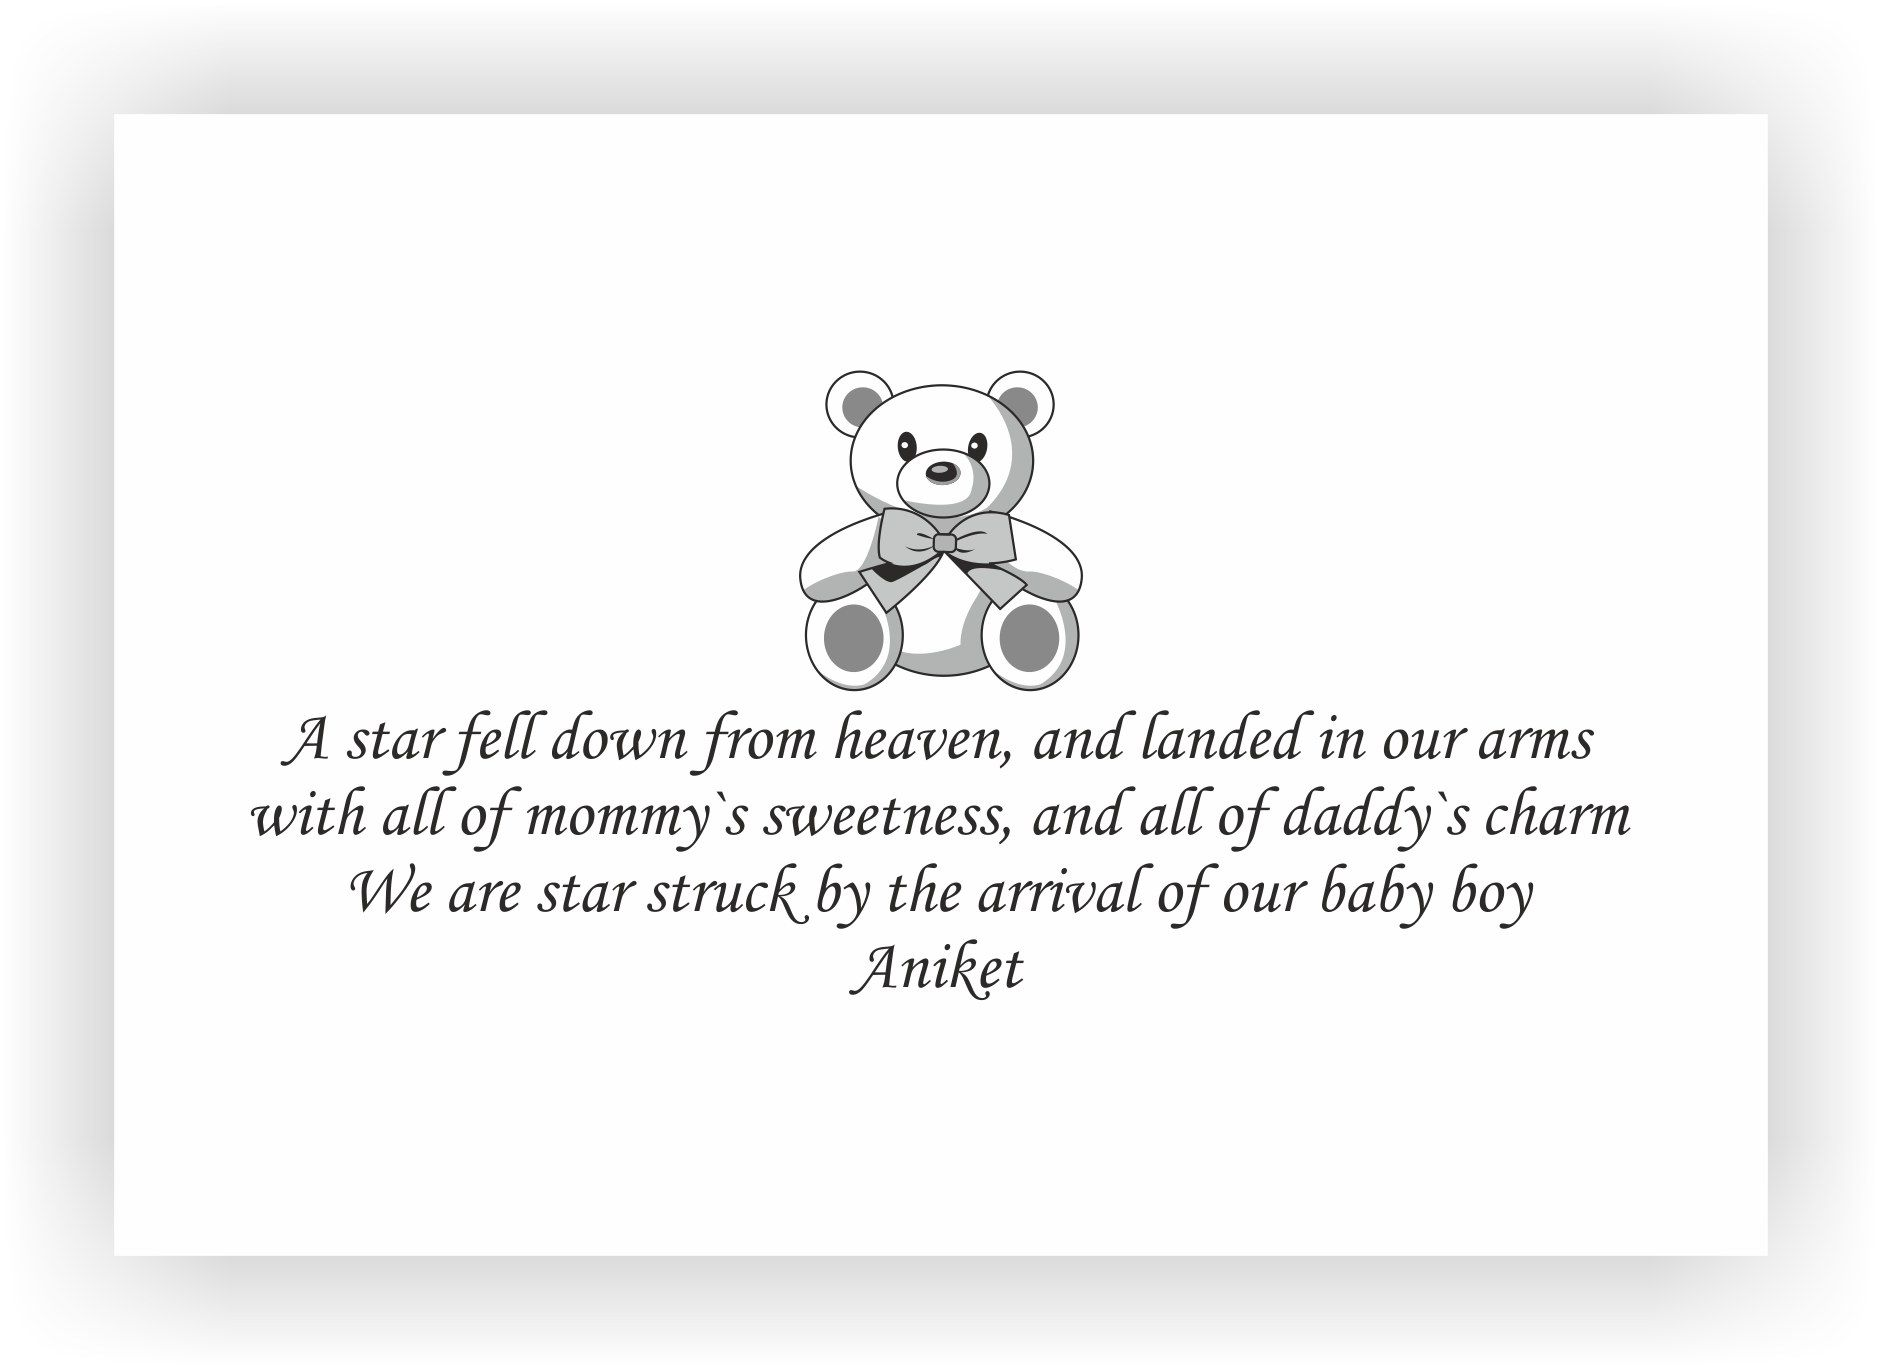 baby boy announcement message - 04